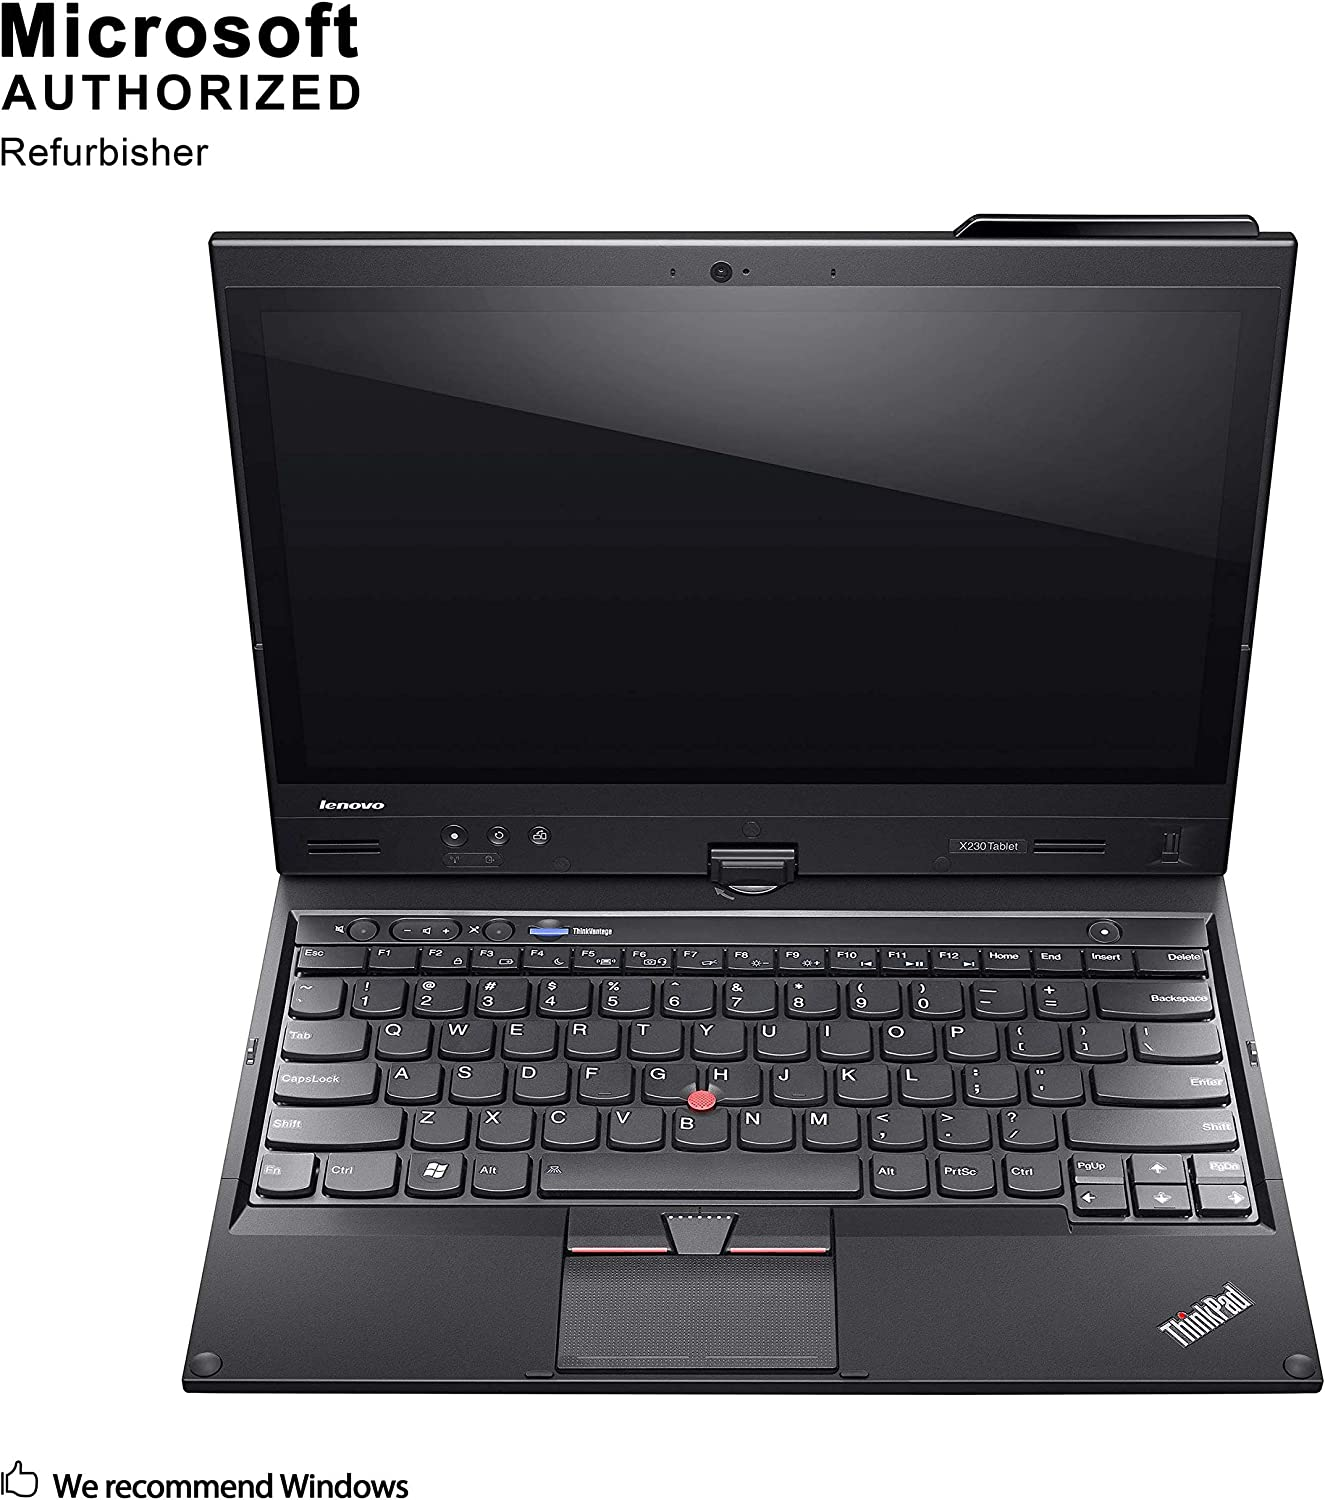 Lenovo ThinkPad X230t 12.5 Inch Convertible Laptop, Intel Core i5 3320M up to 3.3GHz, 8G DDR3, 256G SSD, WiFi, VGA, mDP, Windows 10 64 Bit Multi-Language Supports English/French/Spanish(Renewed)